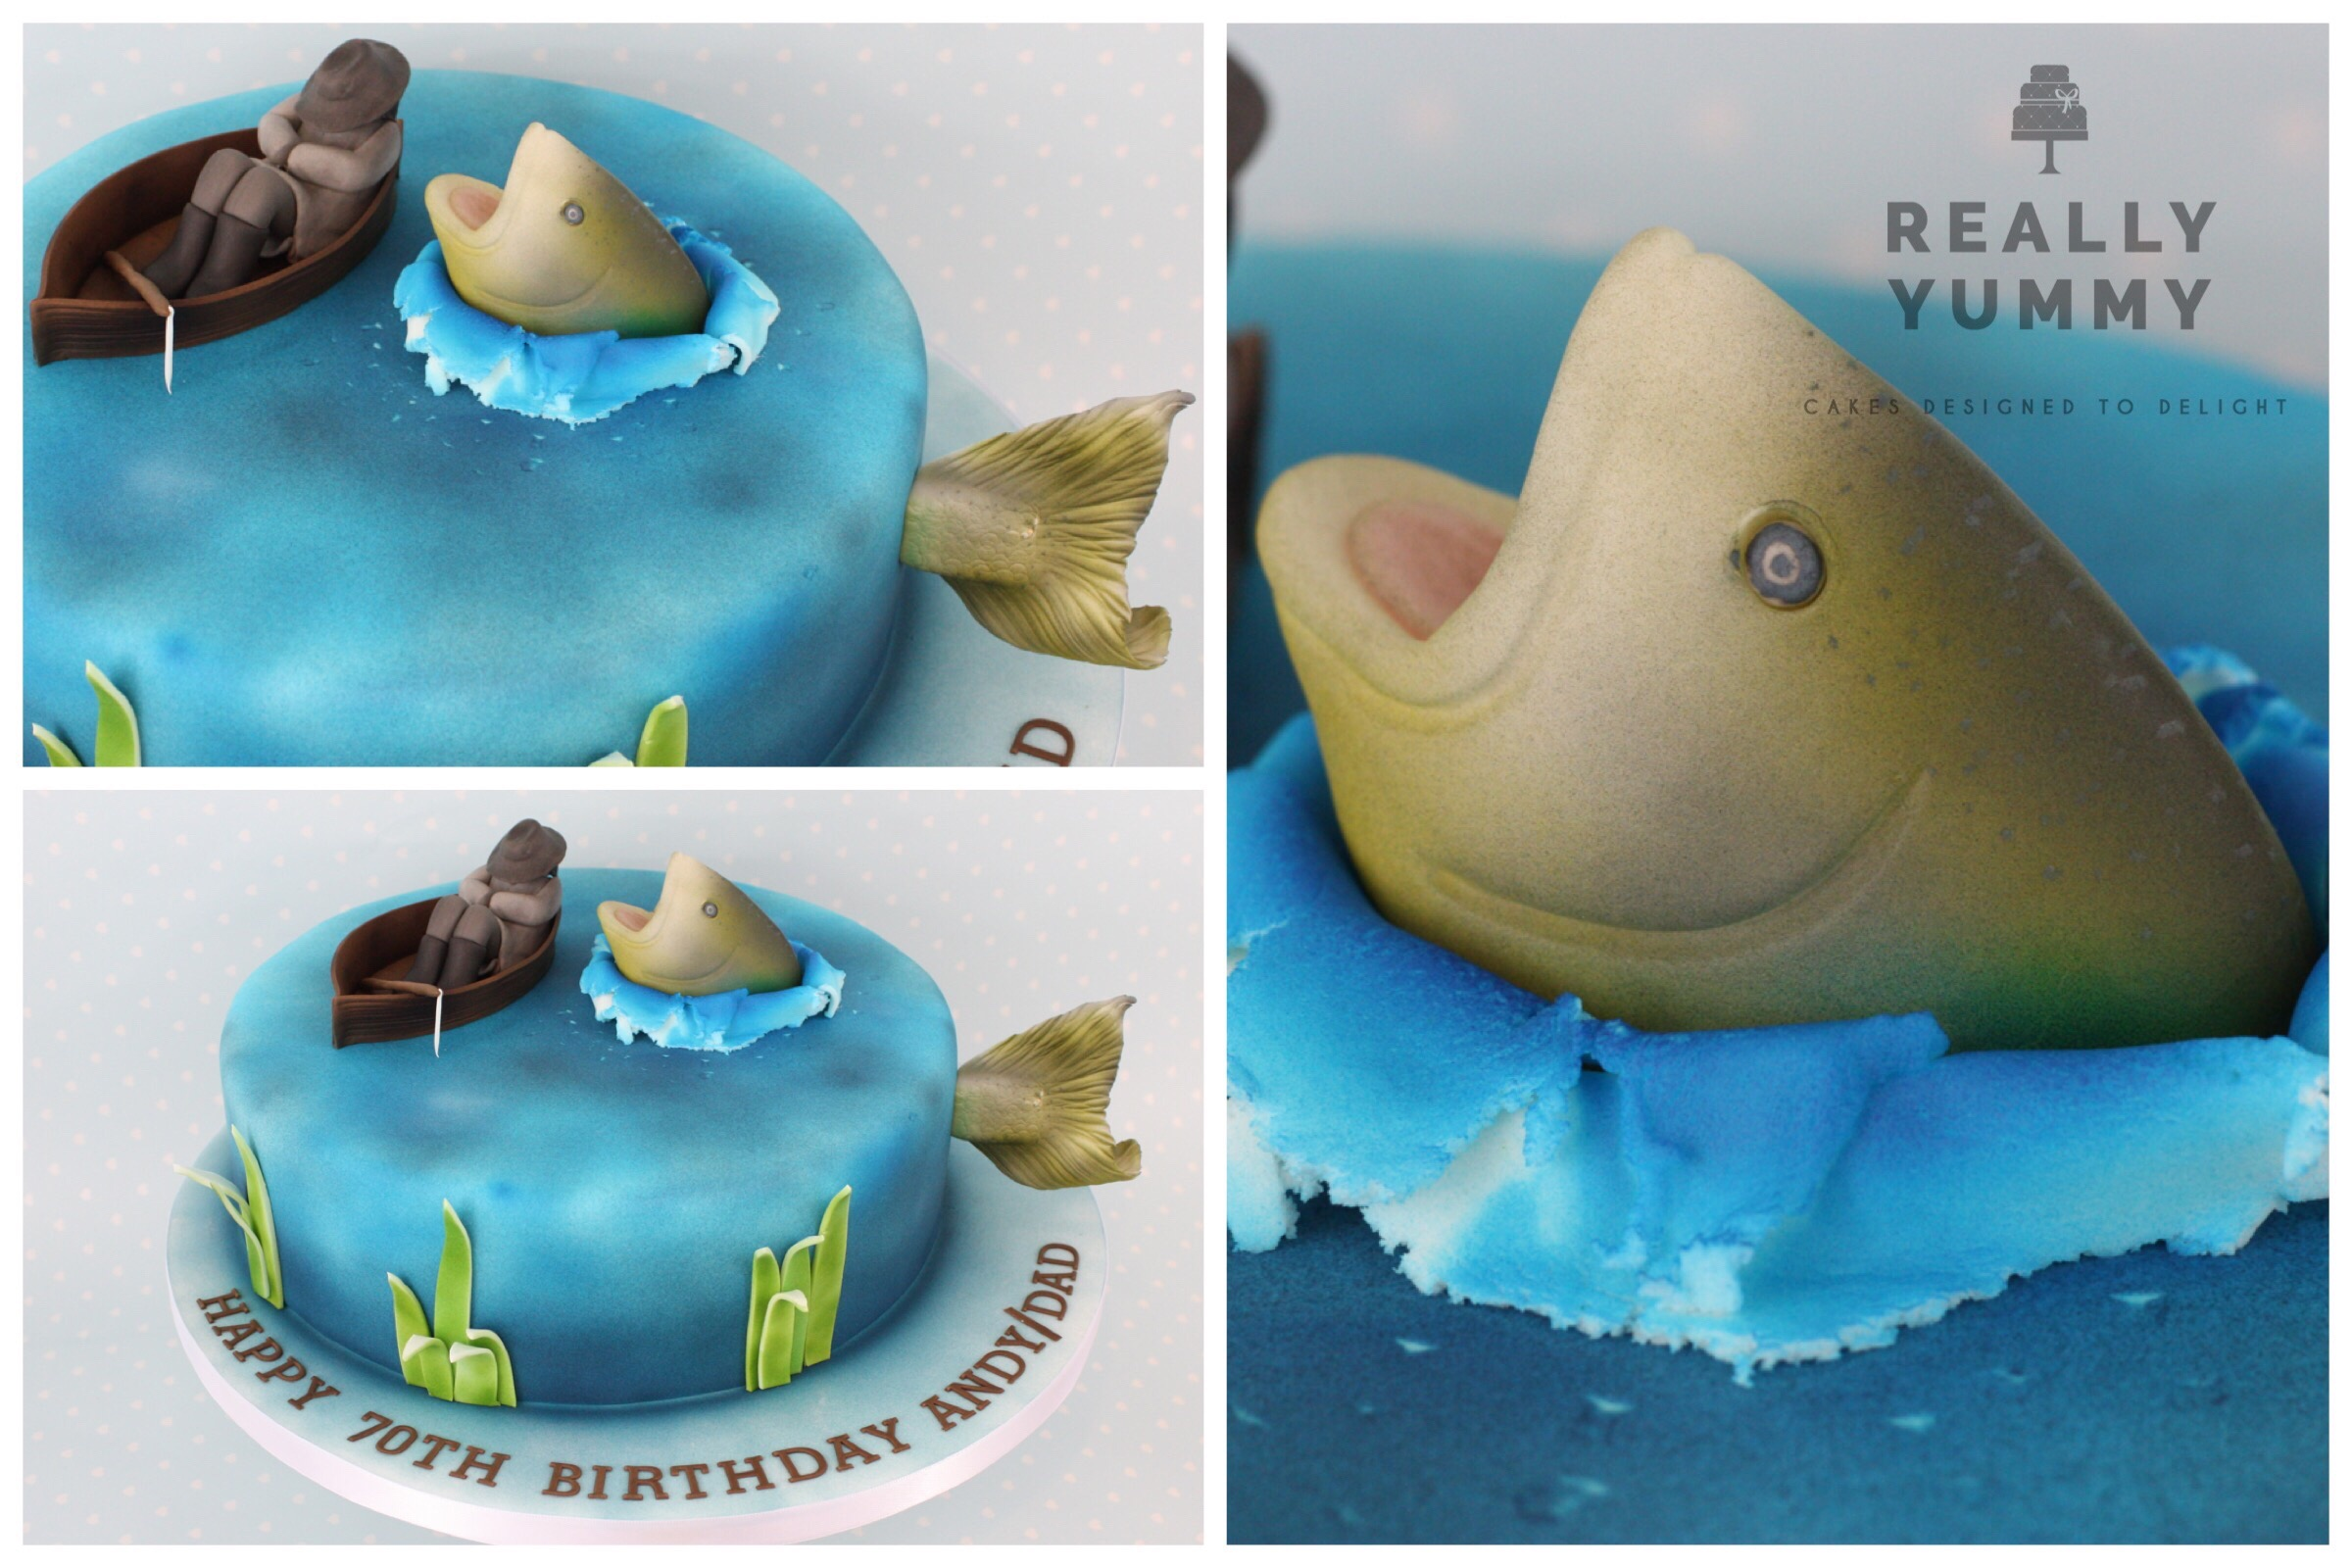 Fishing cake, with salmon and man in boat